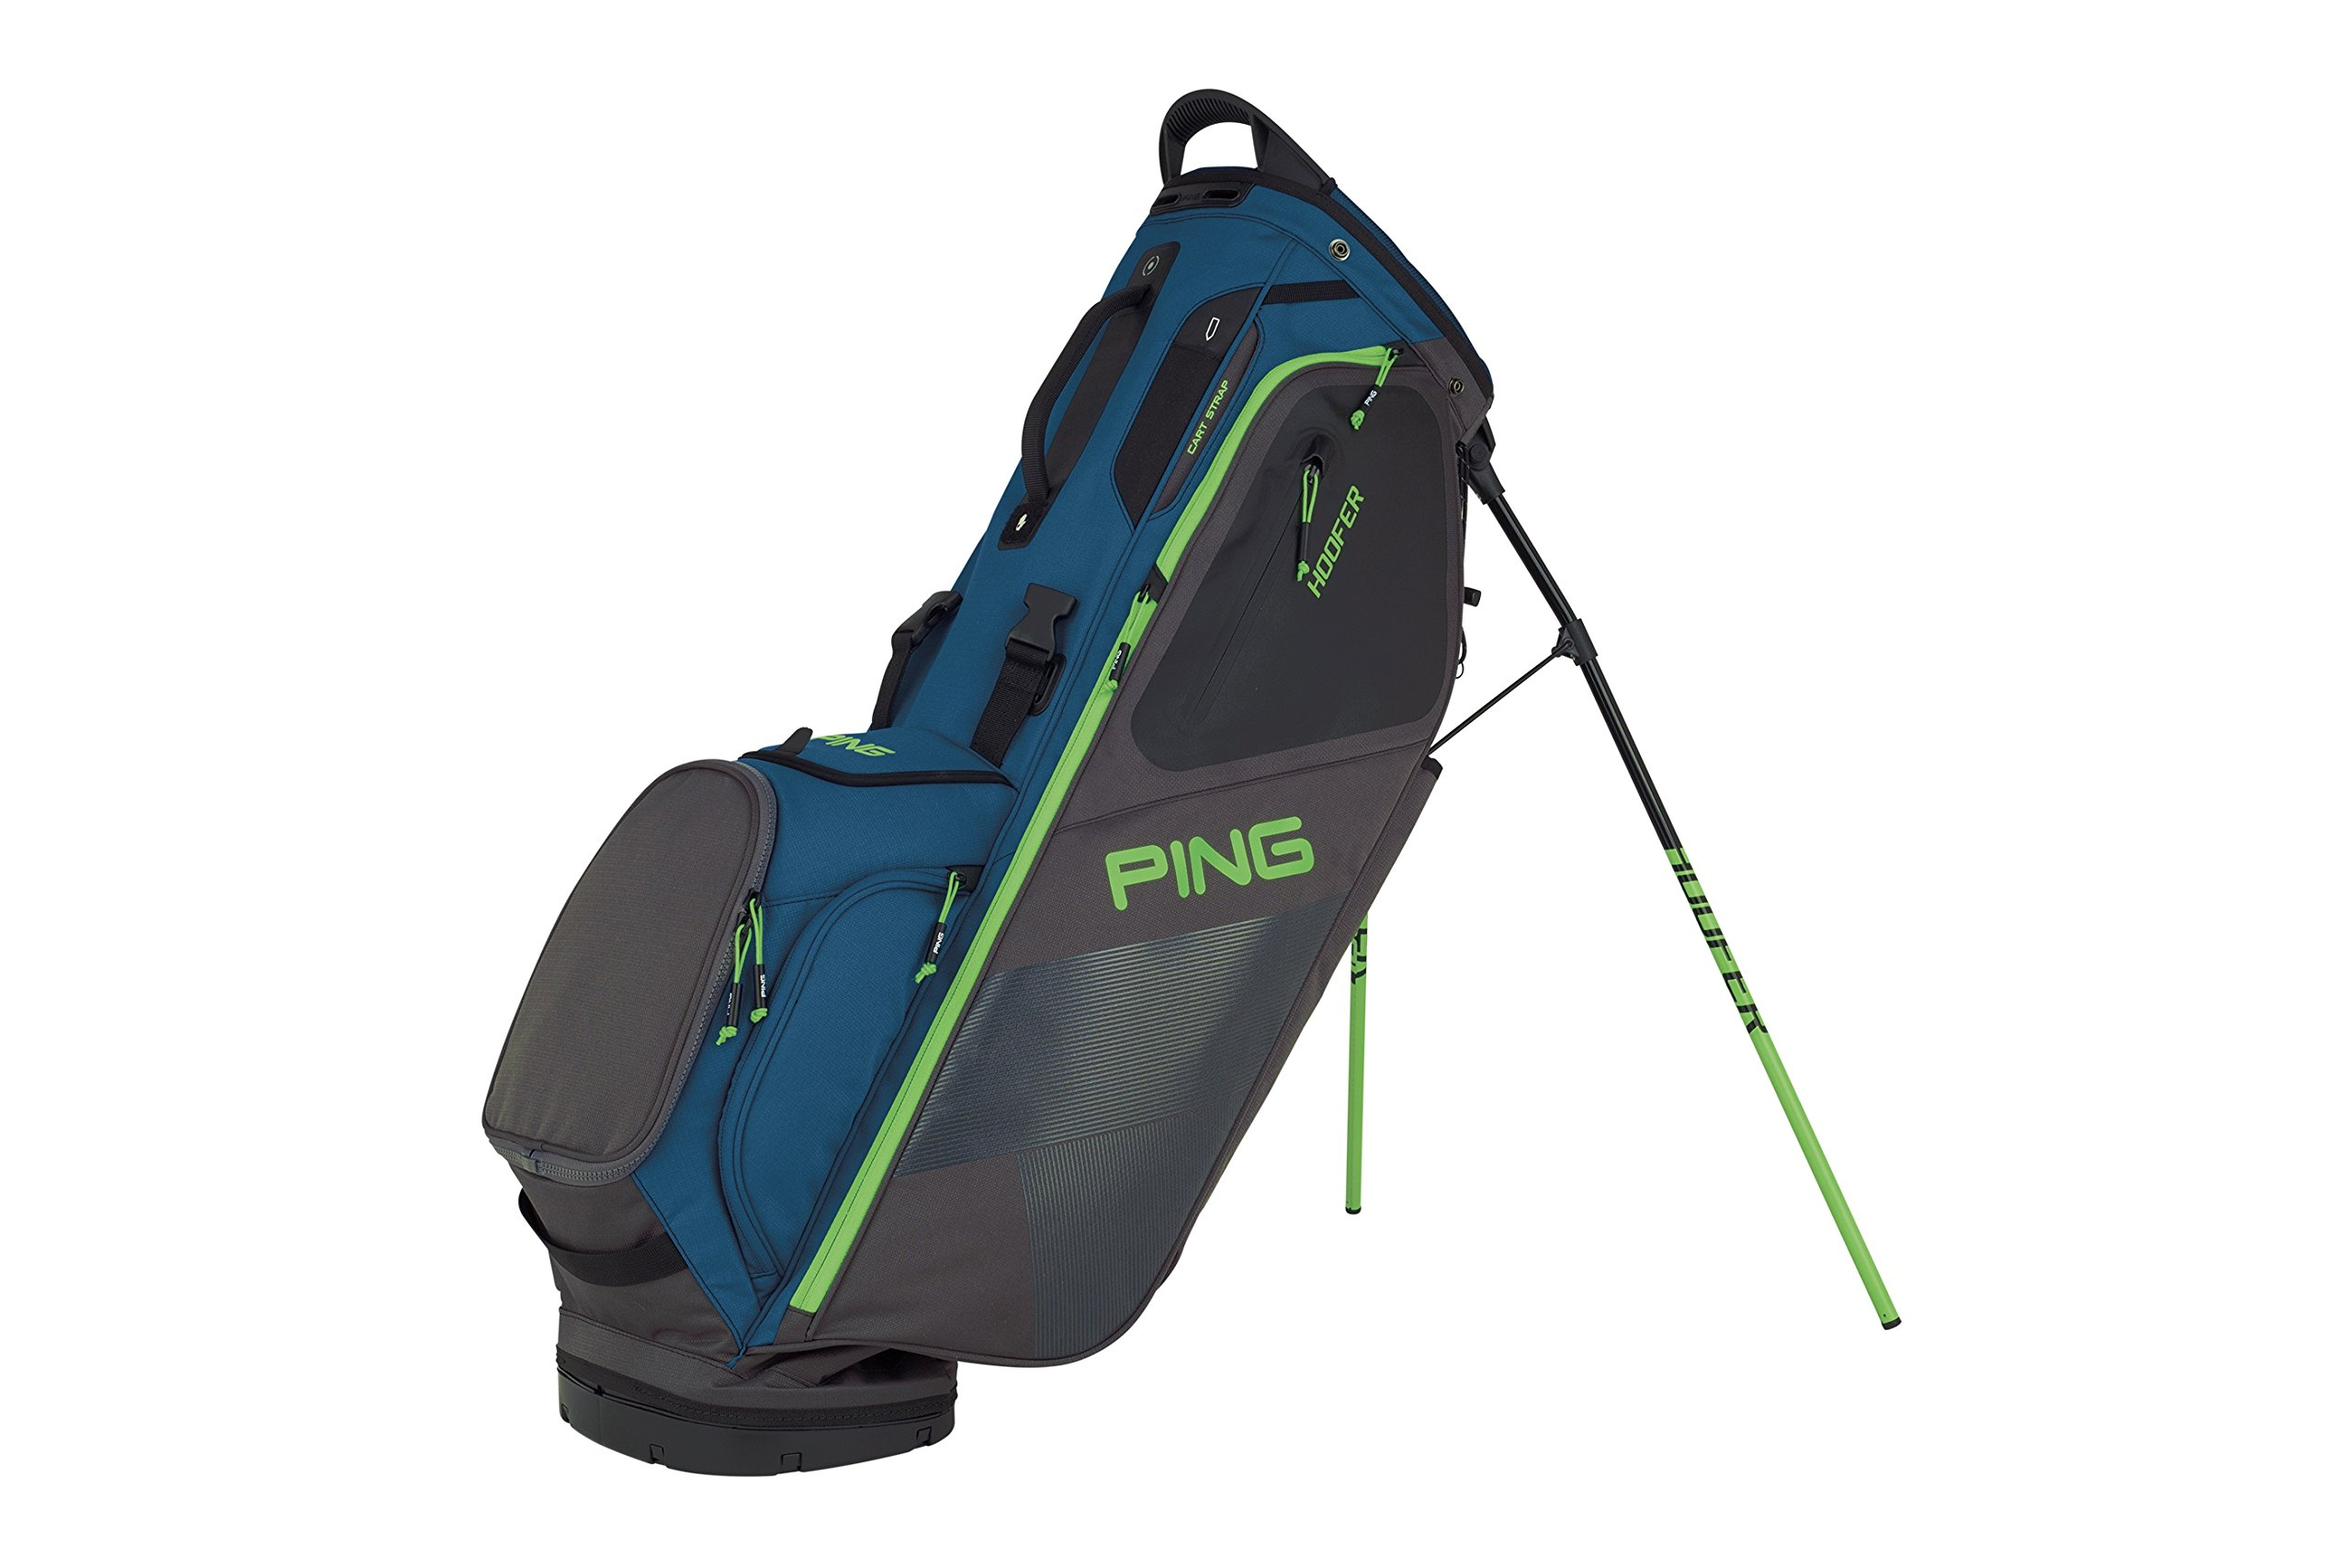 PING 2018 HOOFER 181 STAND GOLF BAG 06 DARK TEAL/GRAPHITE/ELECTRICGREEN